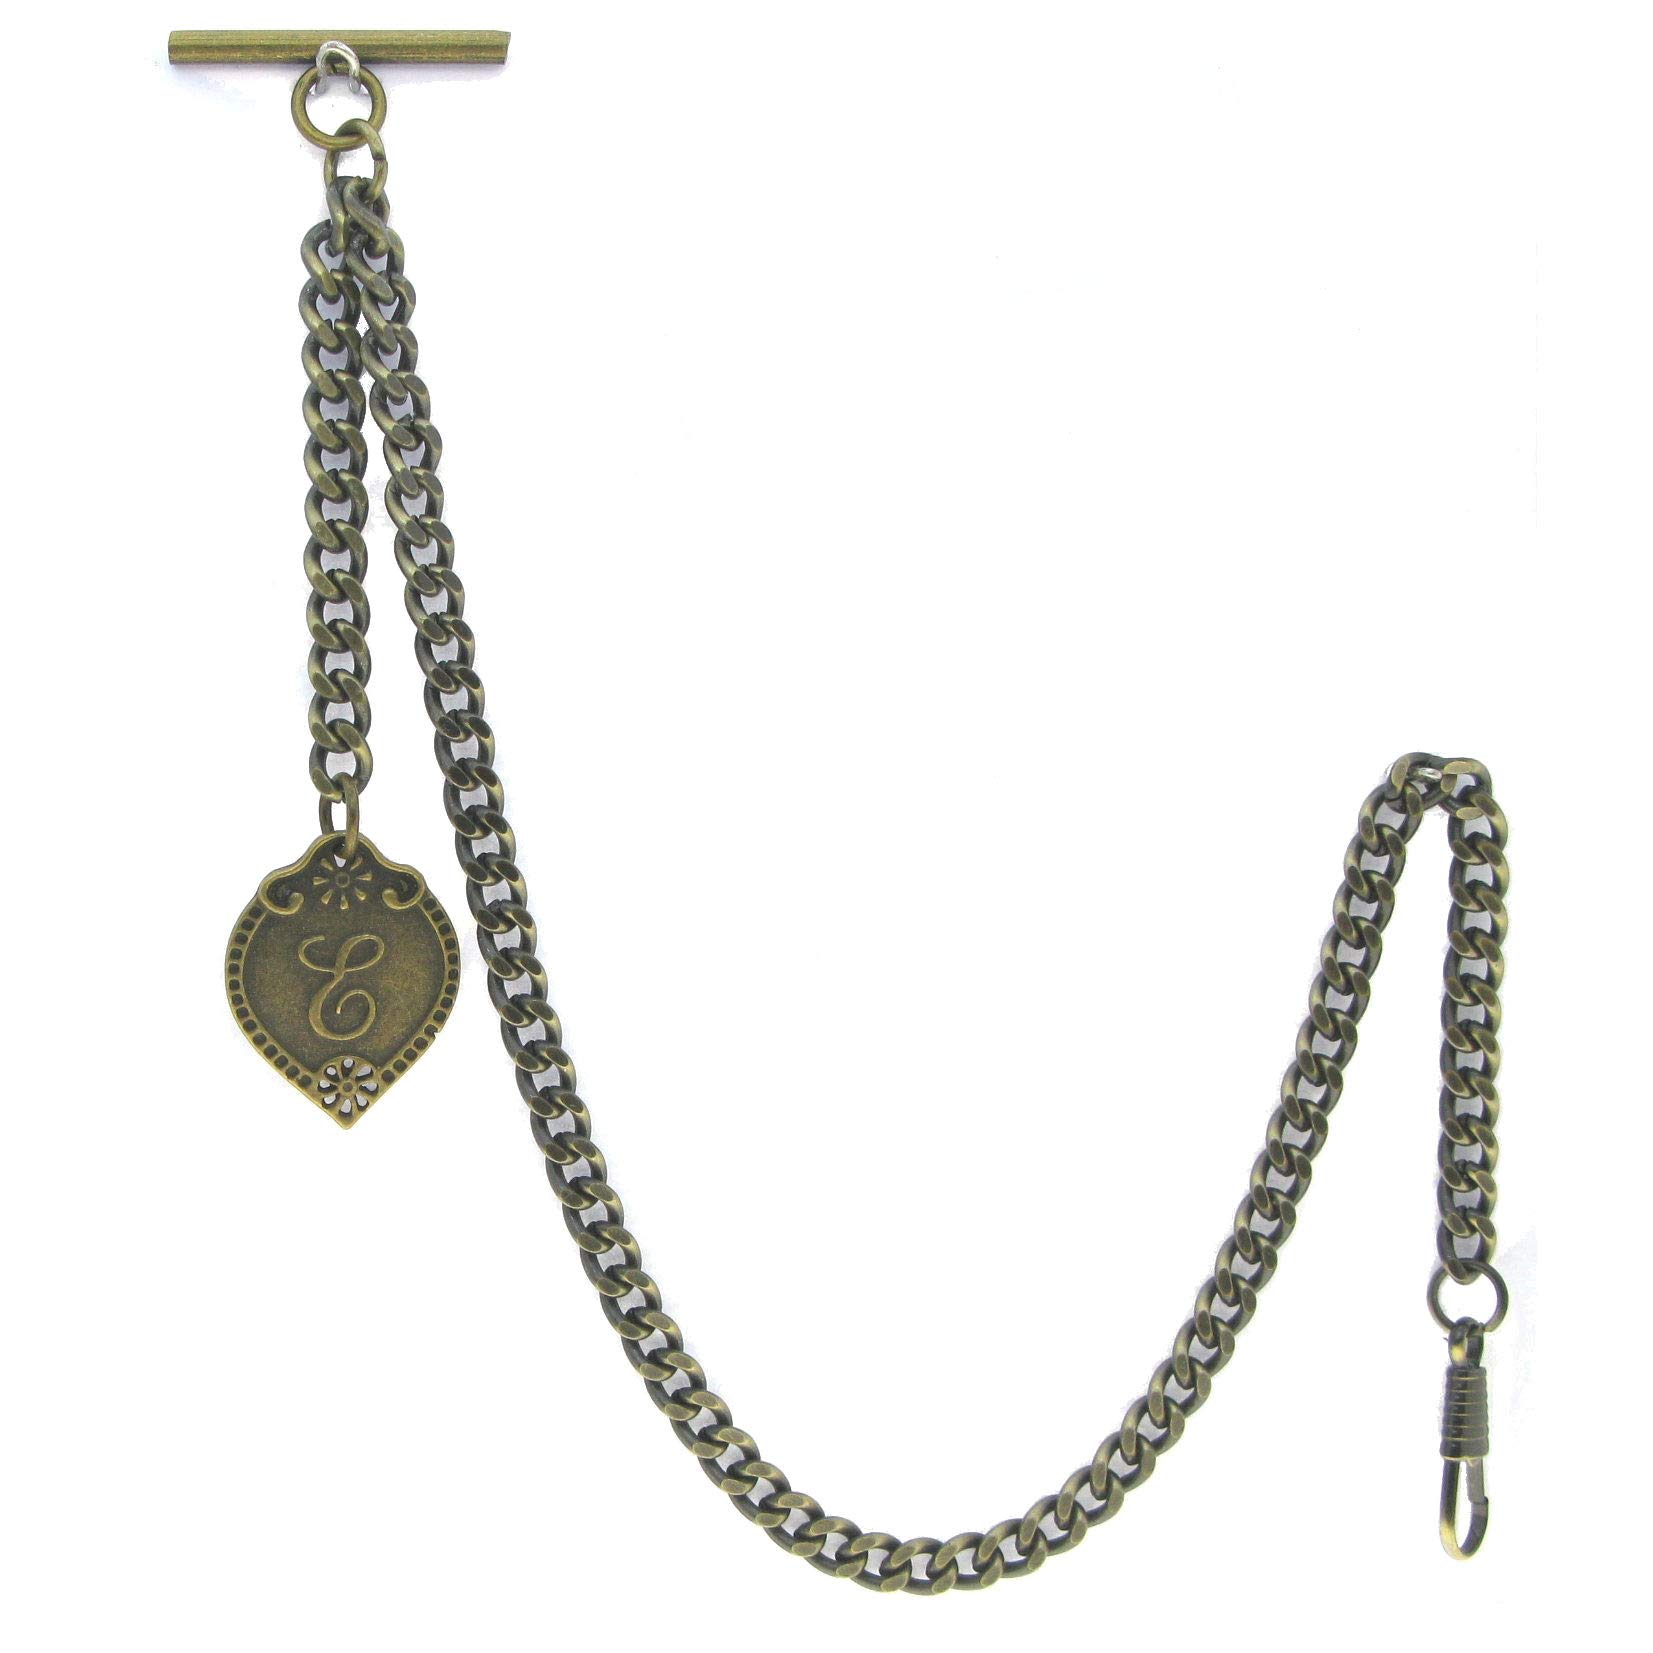 Albert Chain Pocket Watch Curb Link Chain Antique Brass Color + Alphabet E Initial Letter Fob T Bar AC88